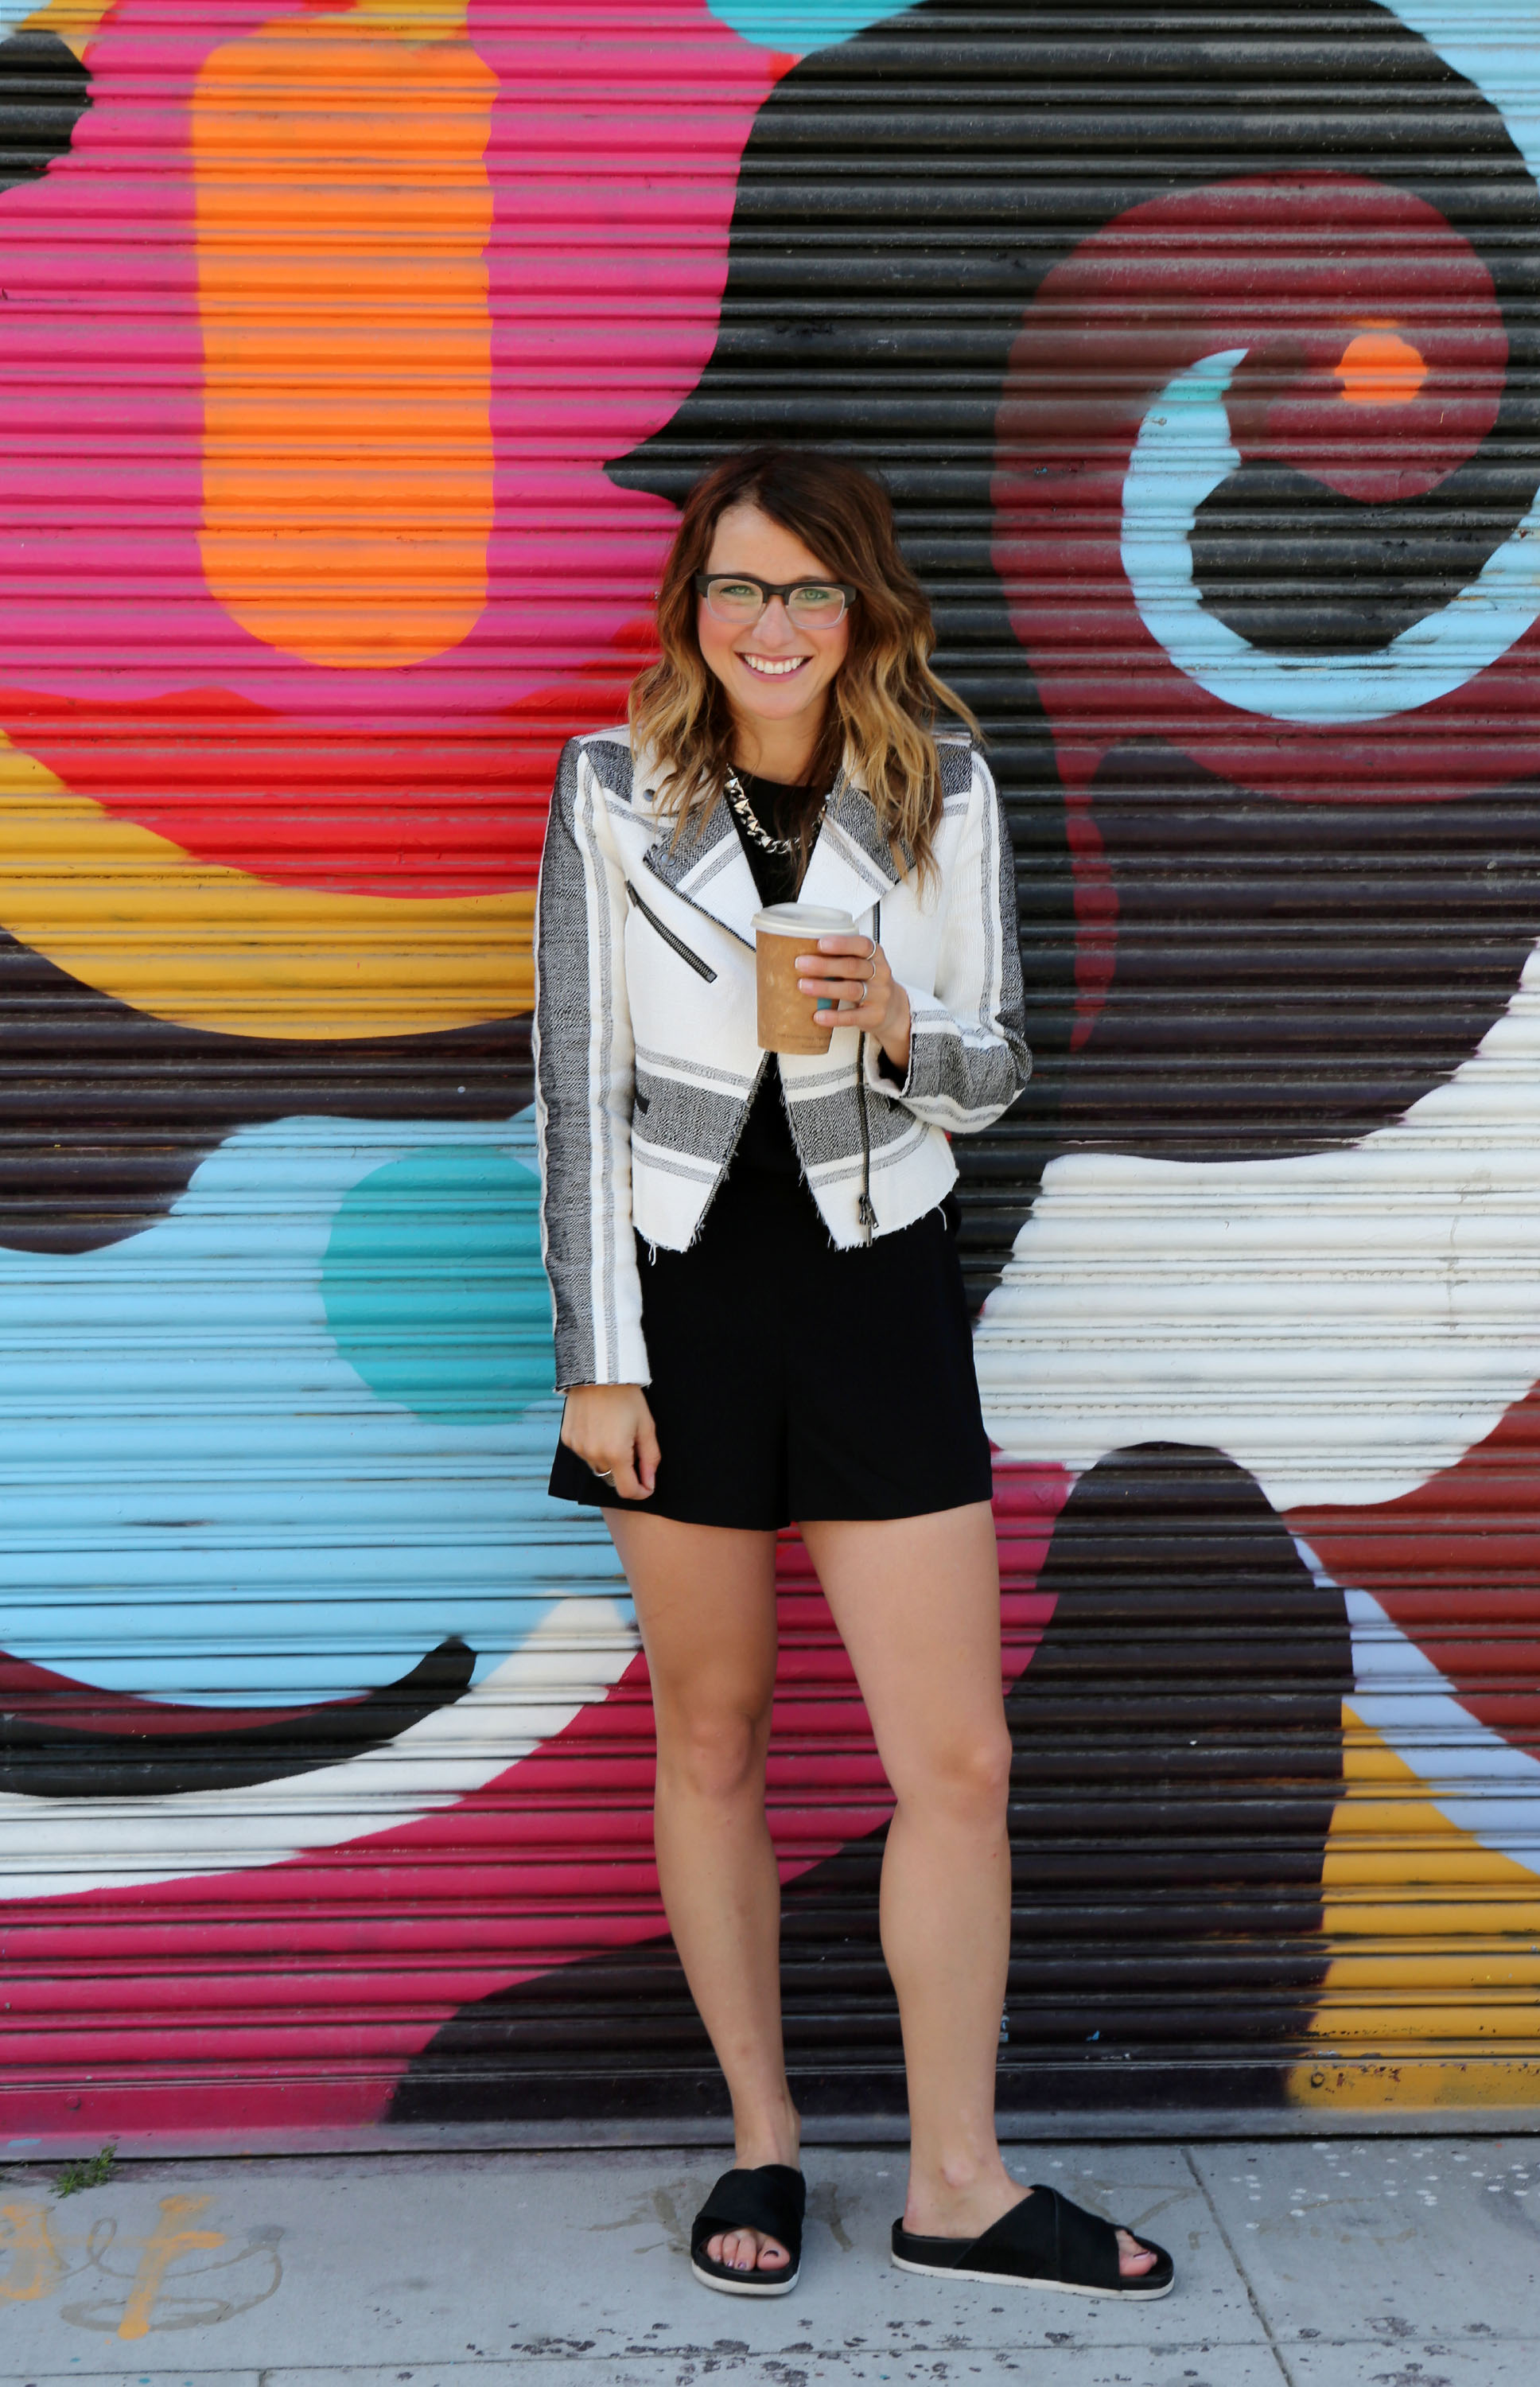 Jacket & Romper: Club Monaco | Shoes: Sam Edelman | Necklace: F21